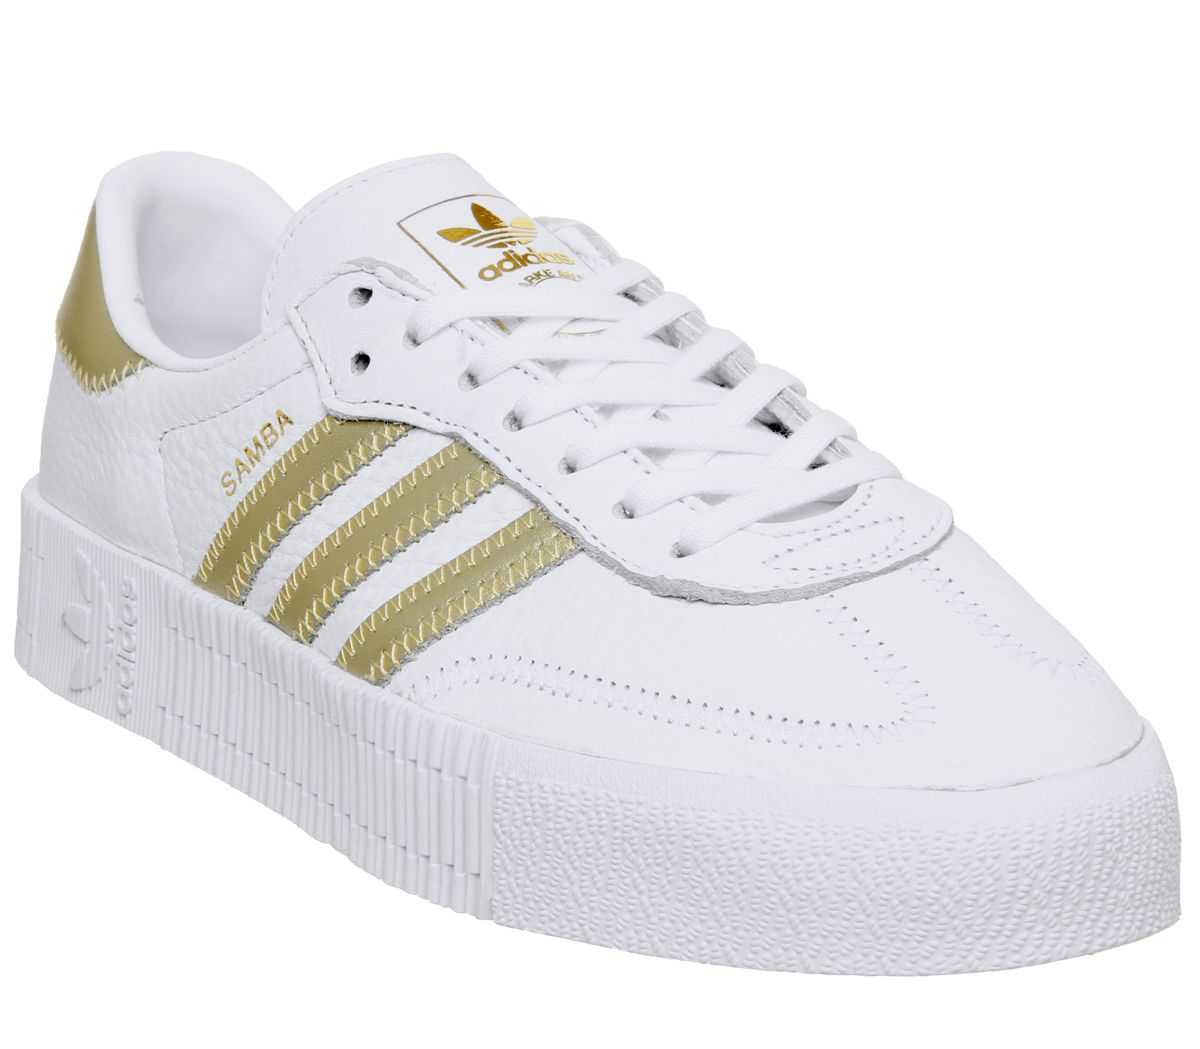 Details about Womens Adidas Samba Rose Trainers White Gold Metallic White Trainers Shoes